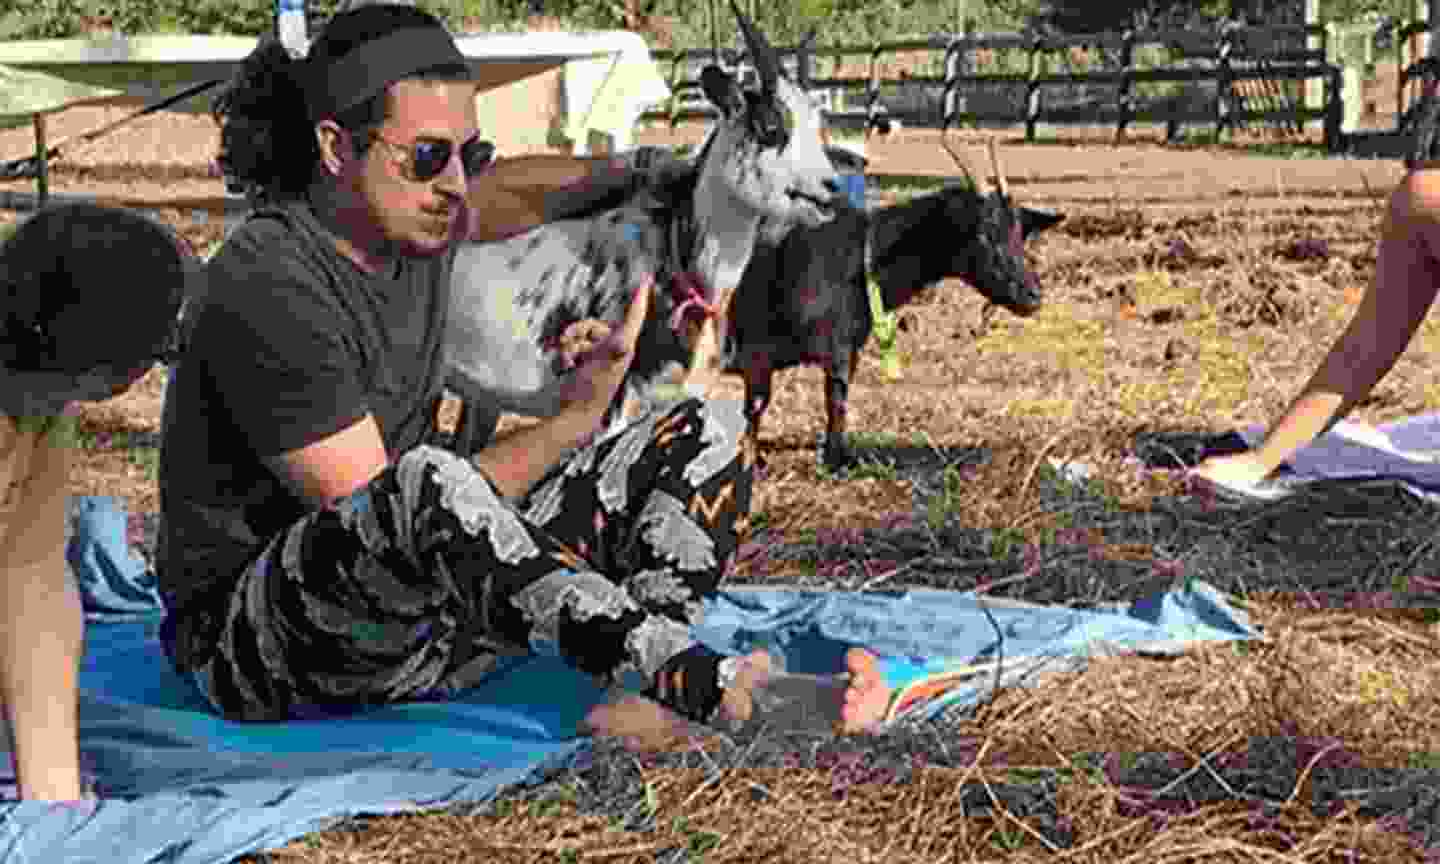 Get flexible with goat yoga